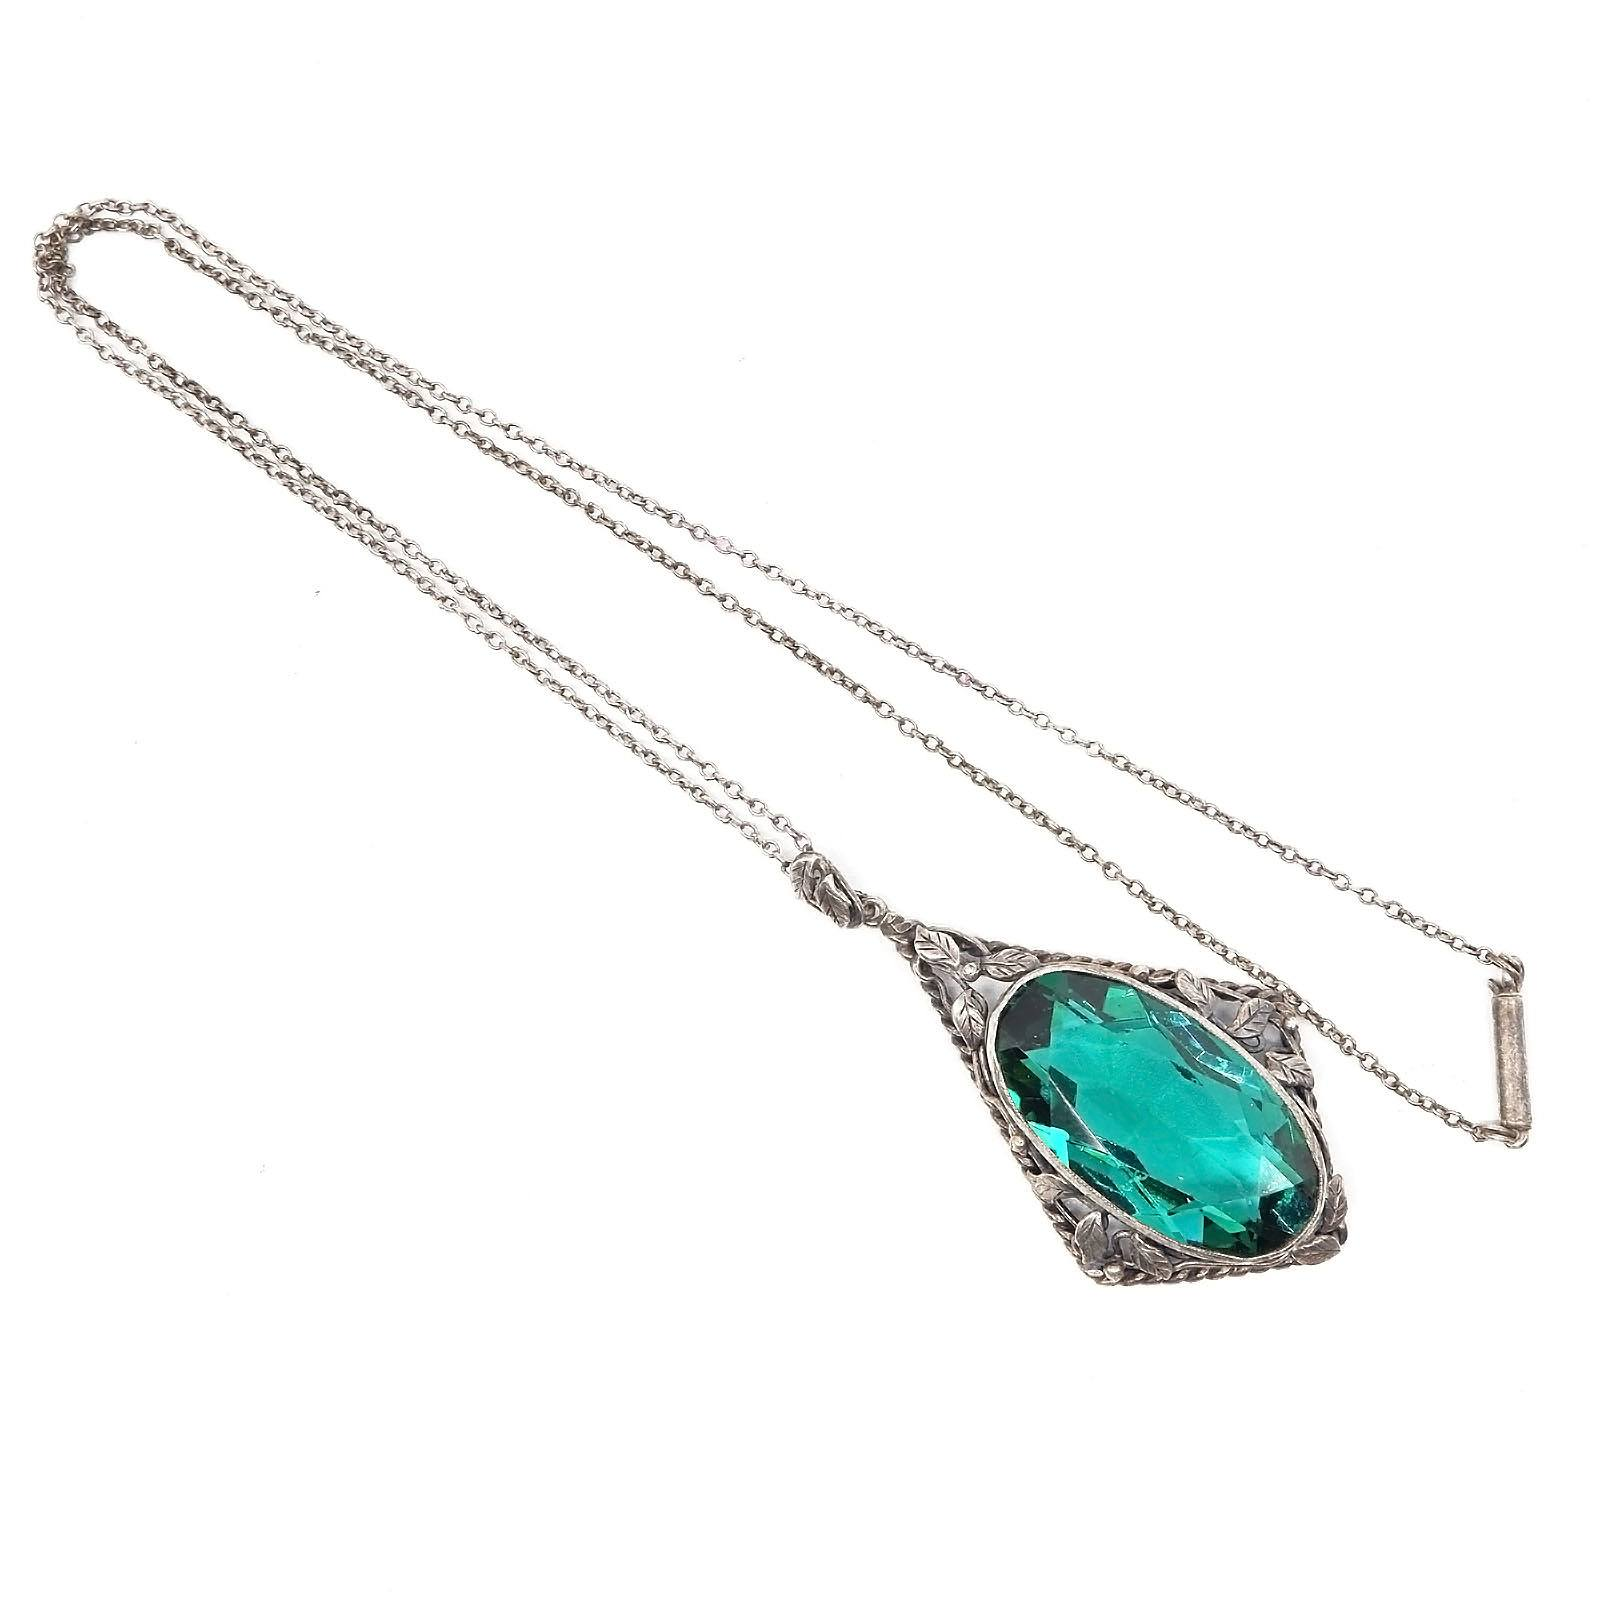 'Antique Silver Pendant with Large Oval Facetted Green Paste Bezel Set in Floral Design on a Silver Chain'